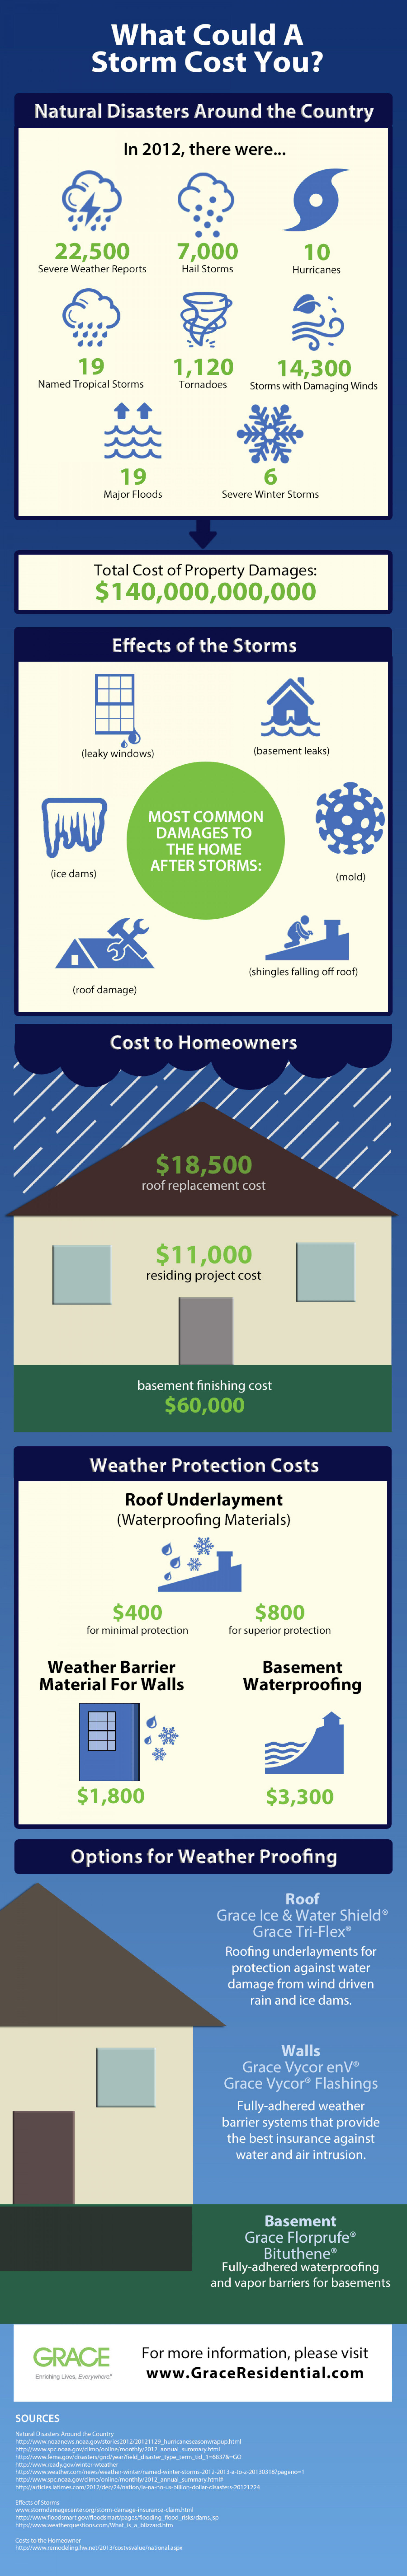 What Could a Storm Cost You? Infographic